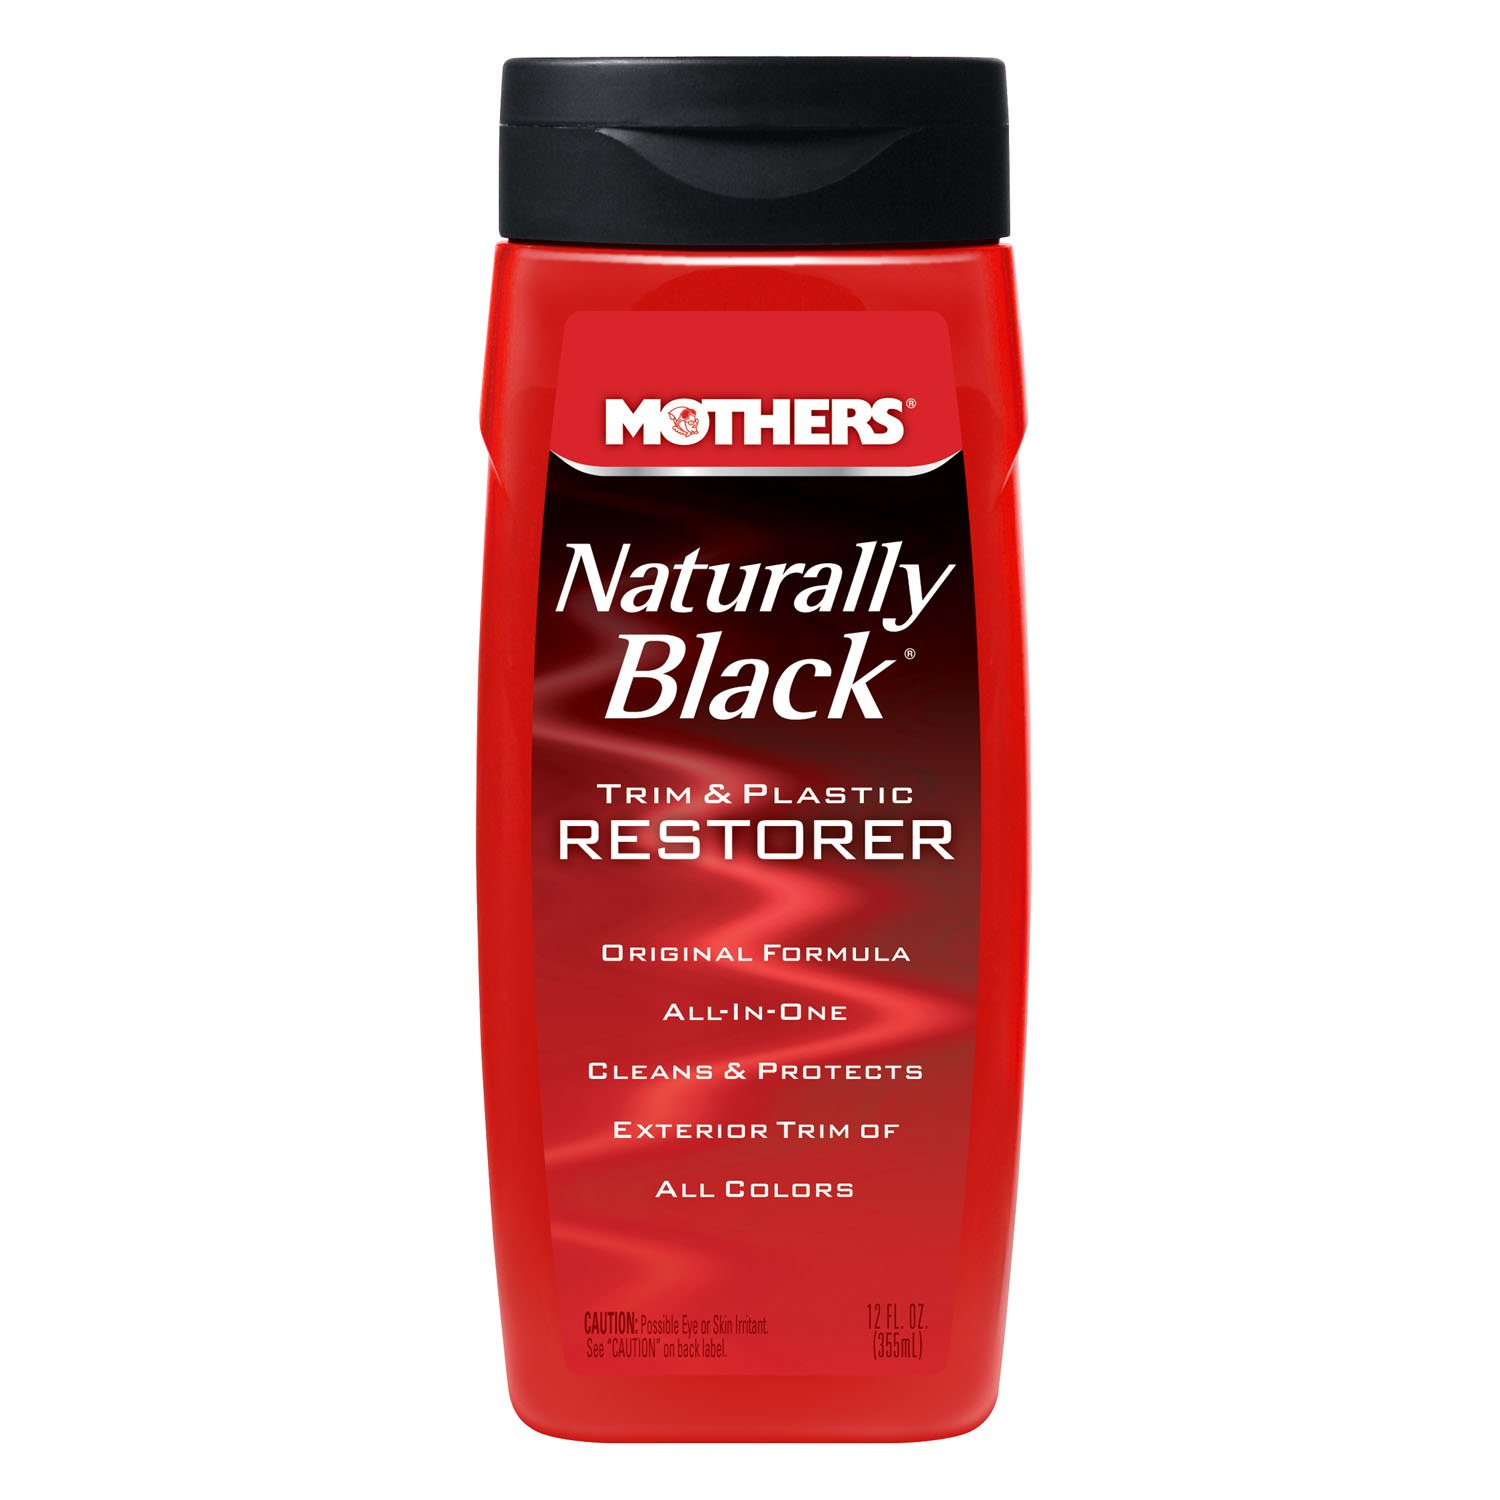 Mother's 46112 Naturally Trim and Plastic Restorer, Black MOTHERS